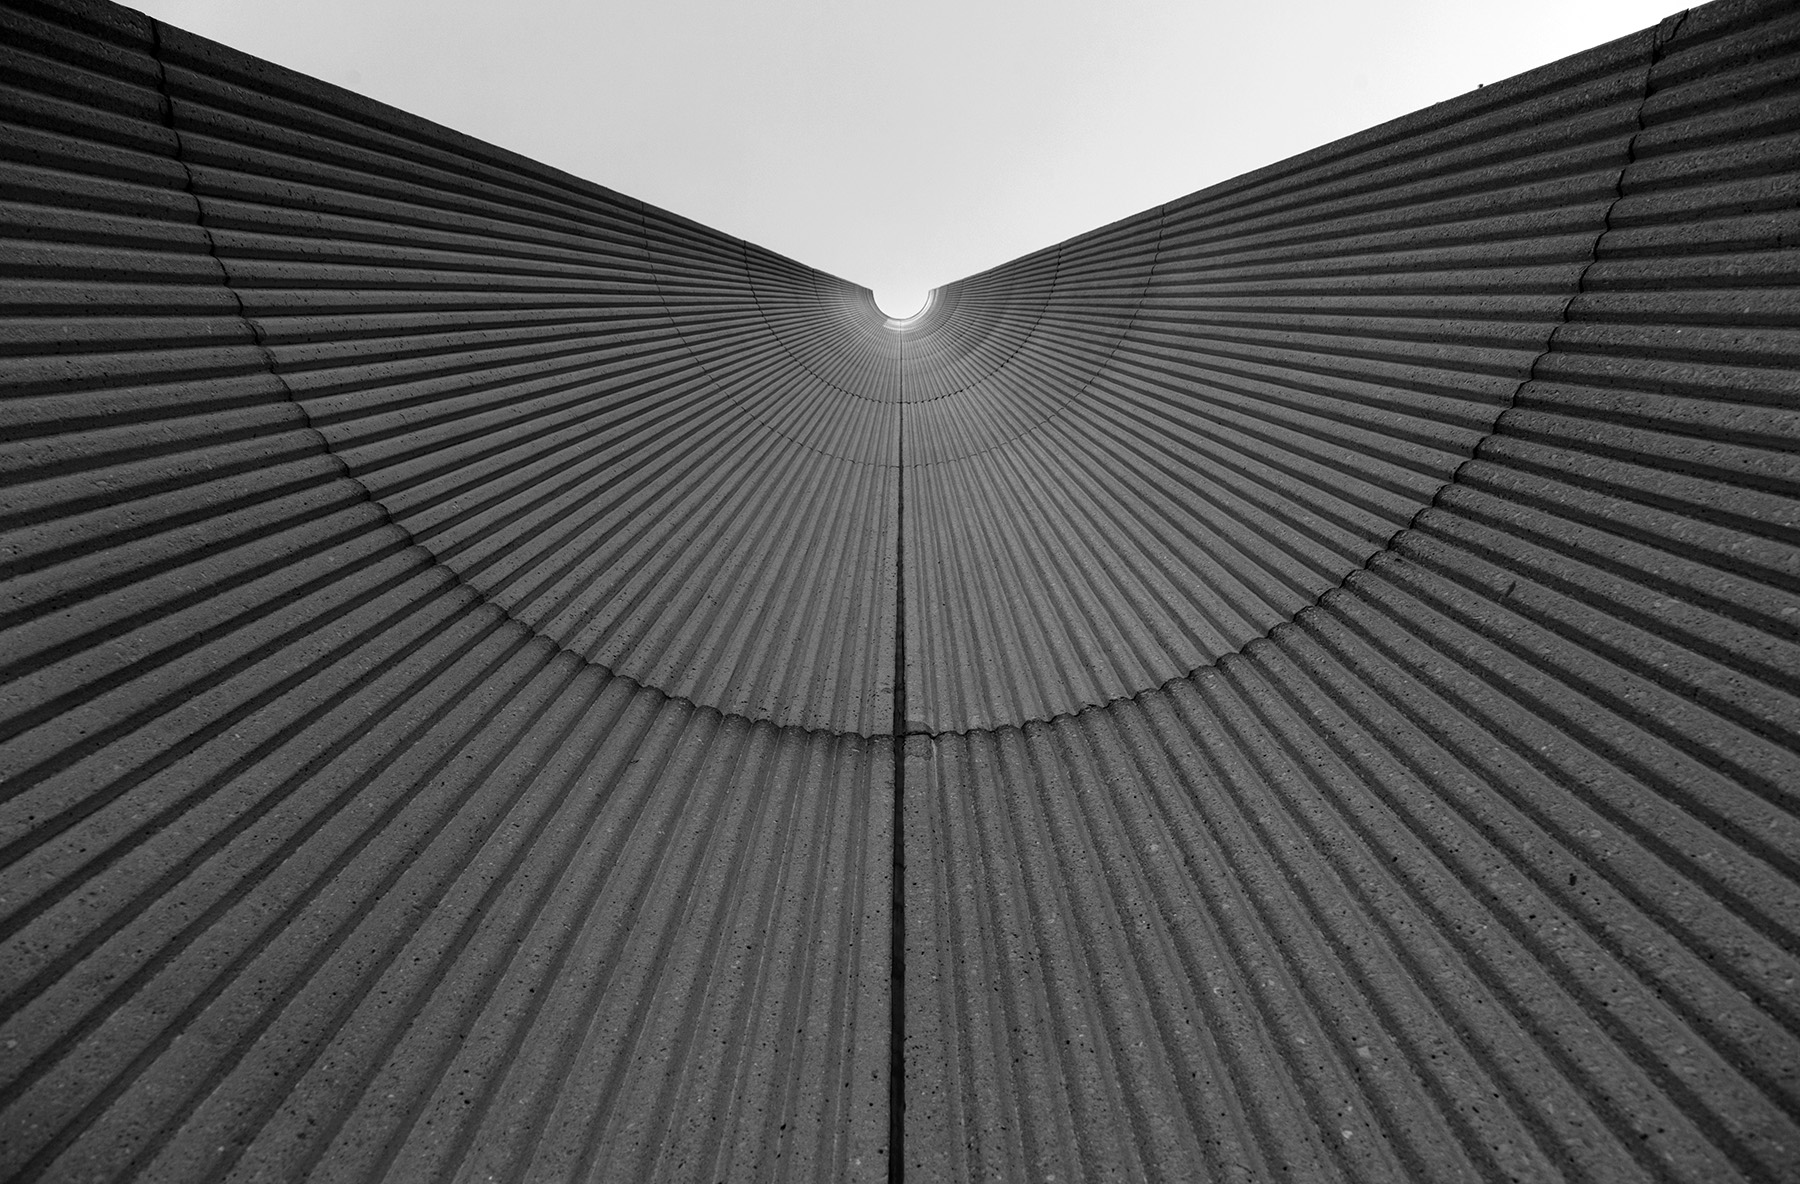 20151217. A concrete striated trough to the sky. Minimal Aesthet